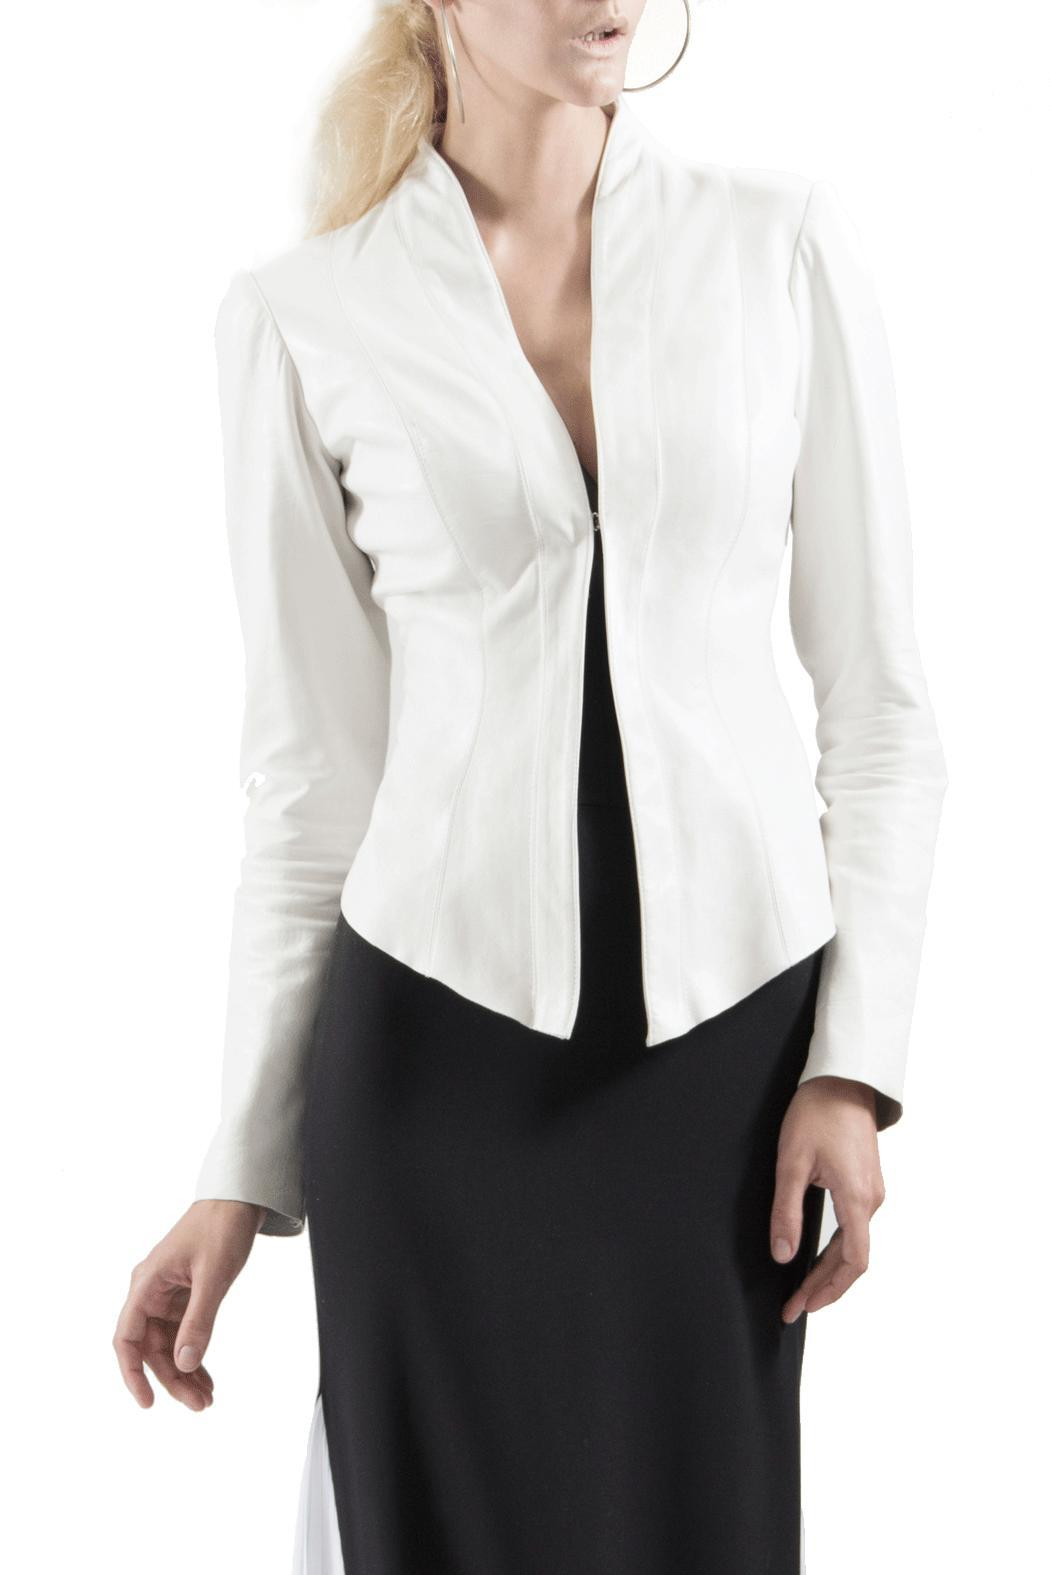 8696b6e7231 Viesca y Viesca Leather Fitted Blazer from Mexico — Shoptiques